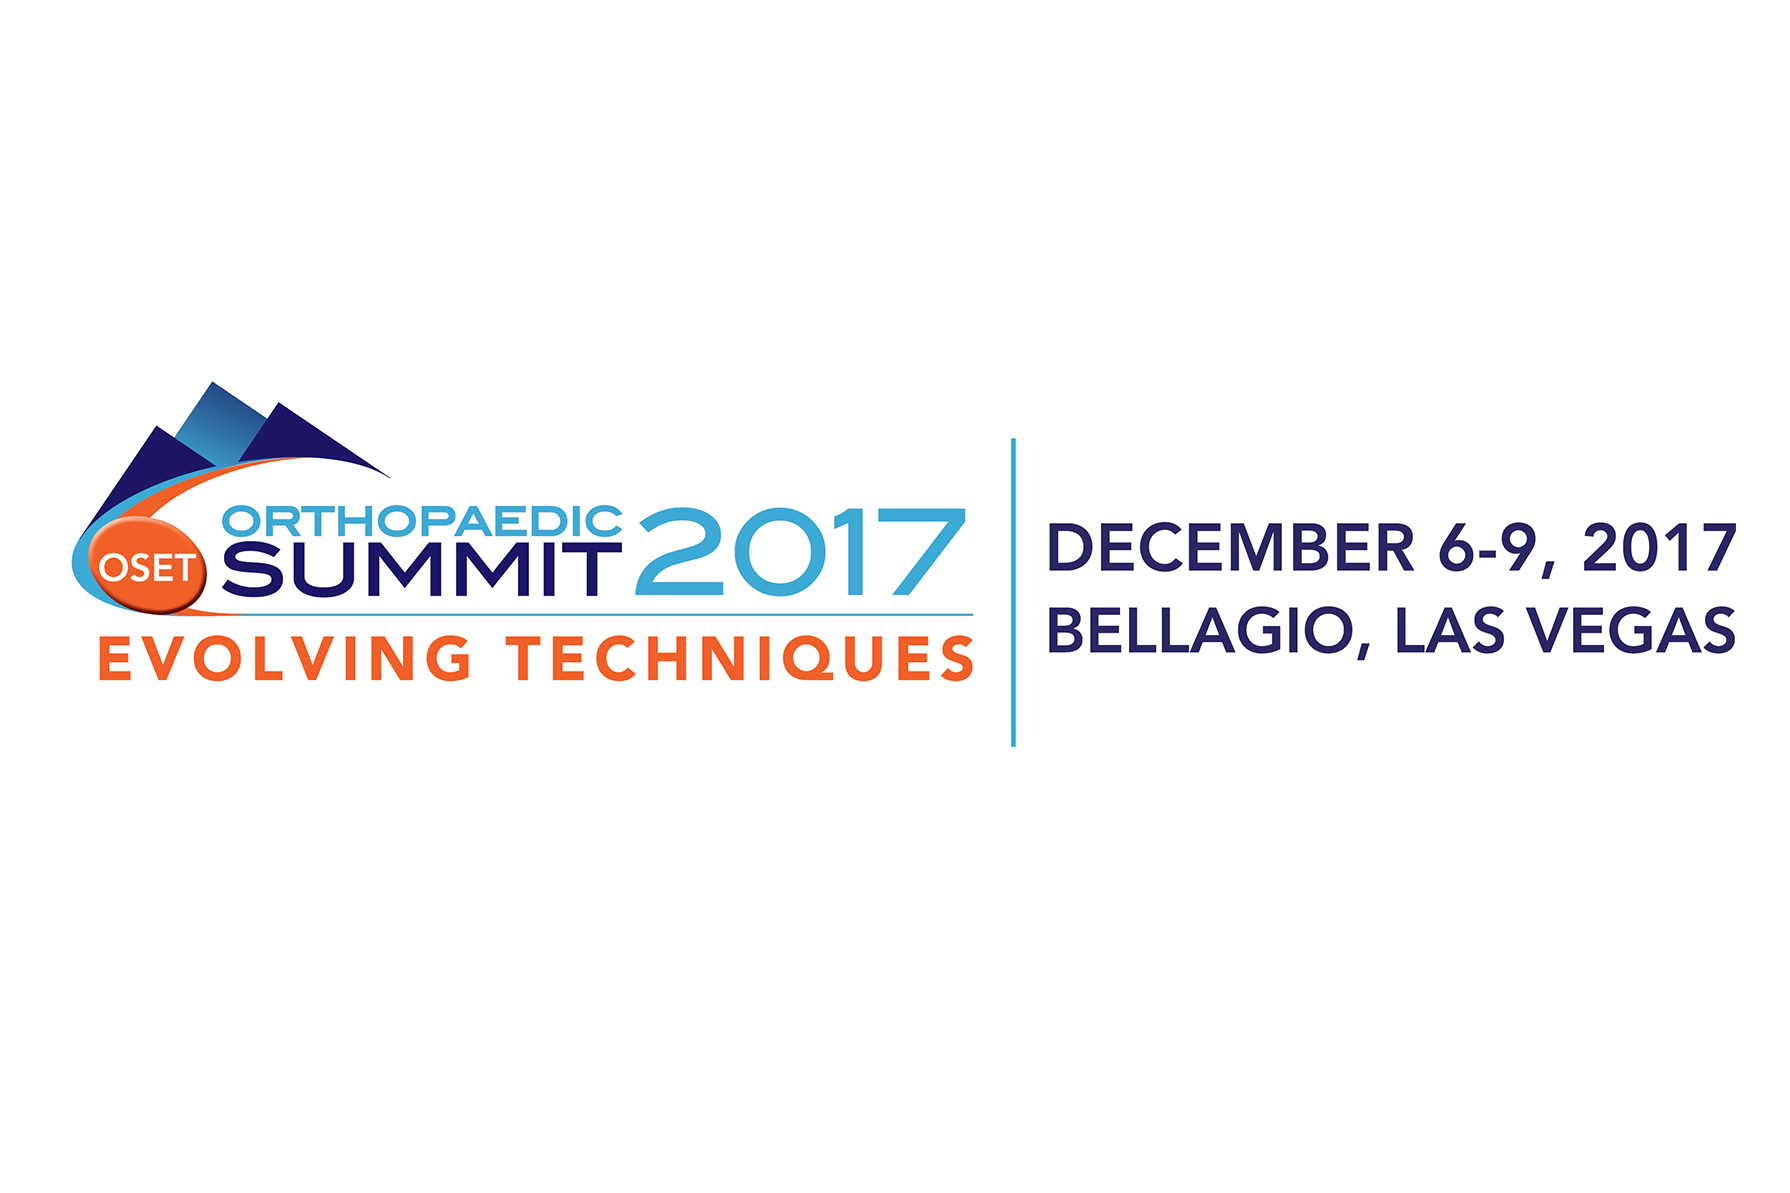 Orthopaedic Summit 2017